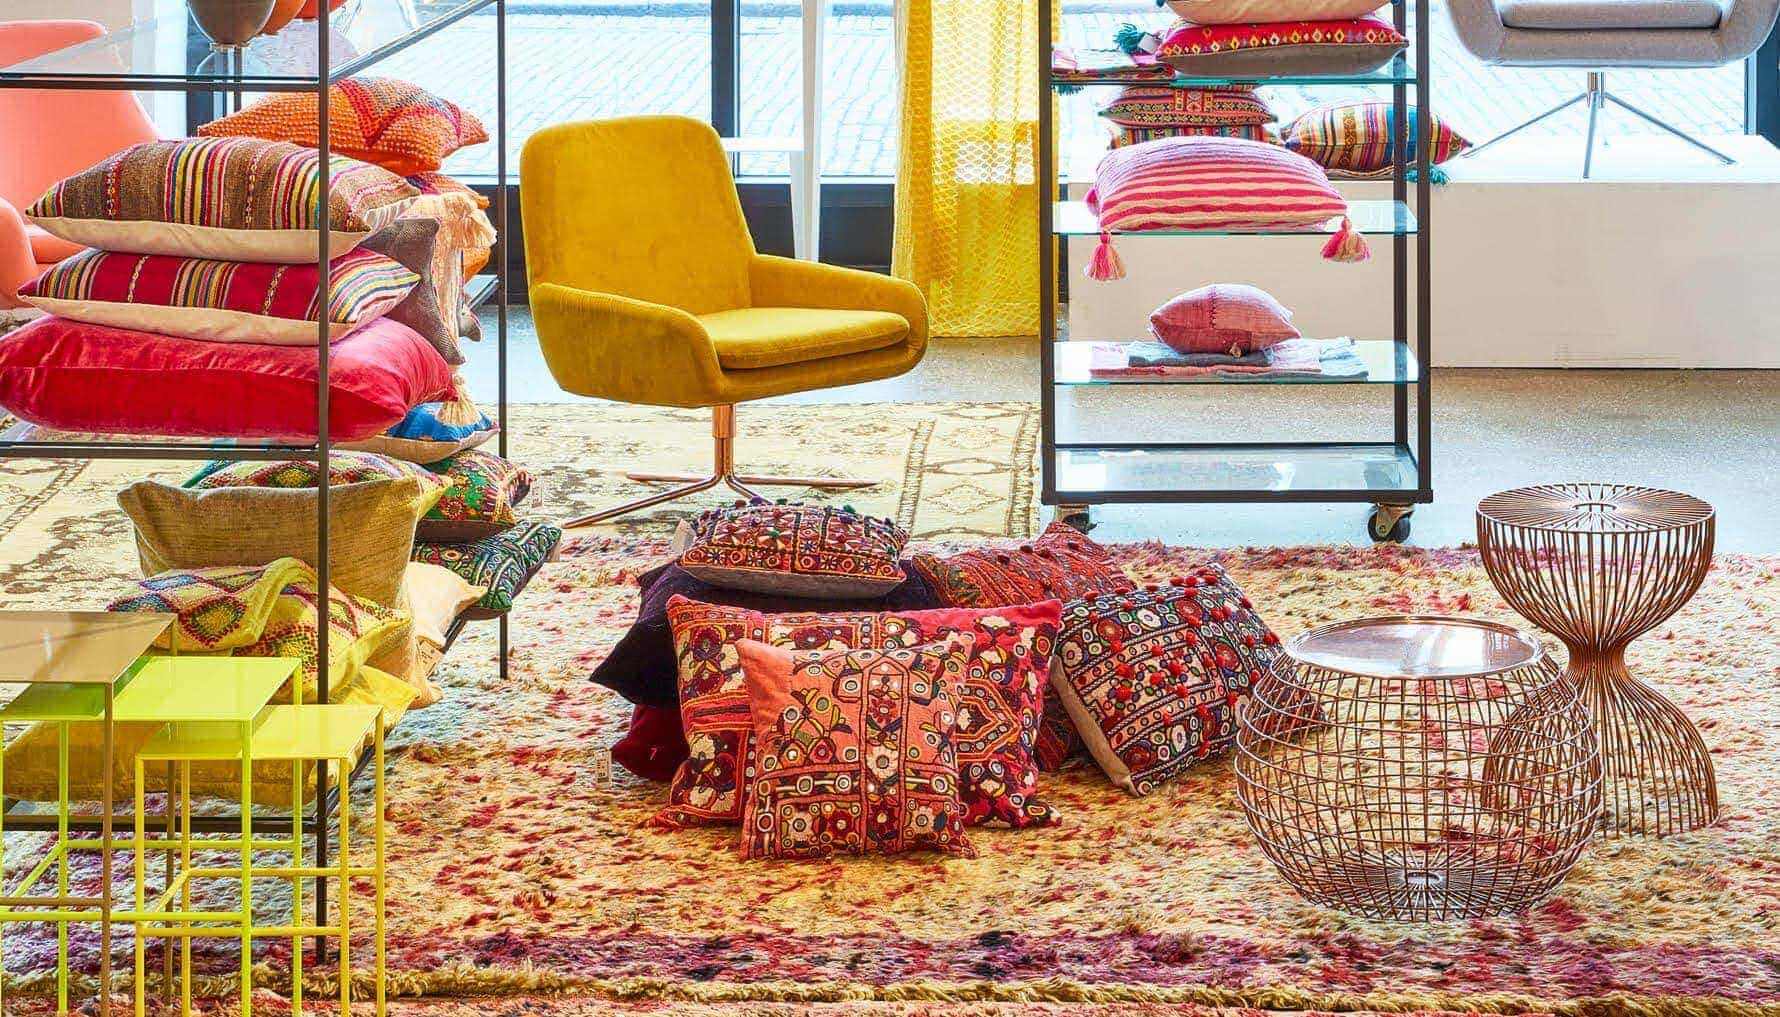 Known for its extravagant home furnishings and decor, 125-year-old ABC Carpet + Home filed for Chapter 11 bankruptcy after sales plummeted.